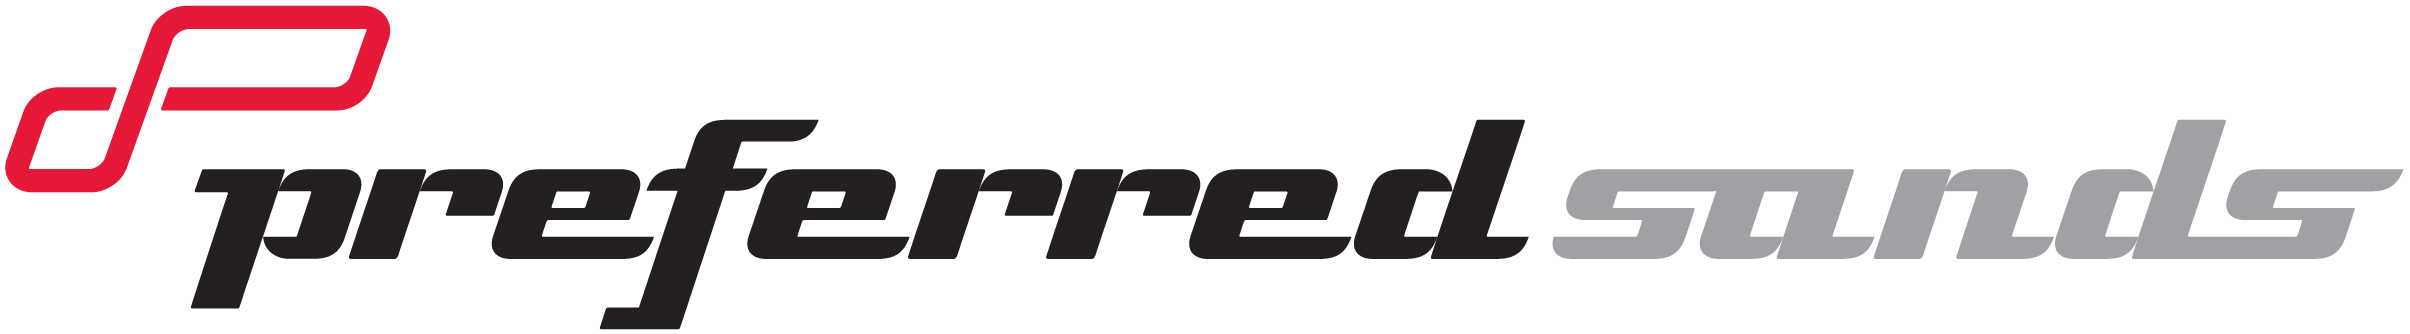 Preferred logo